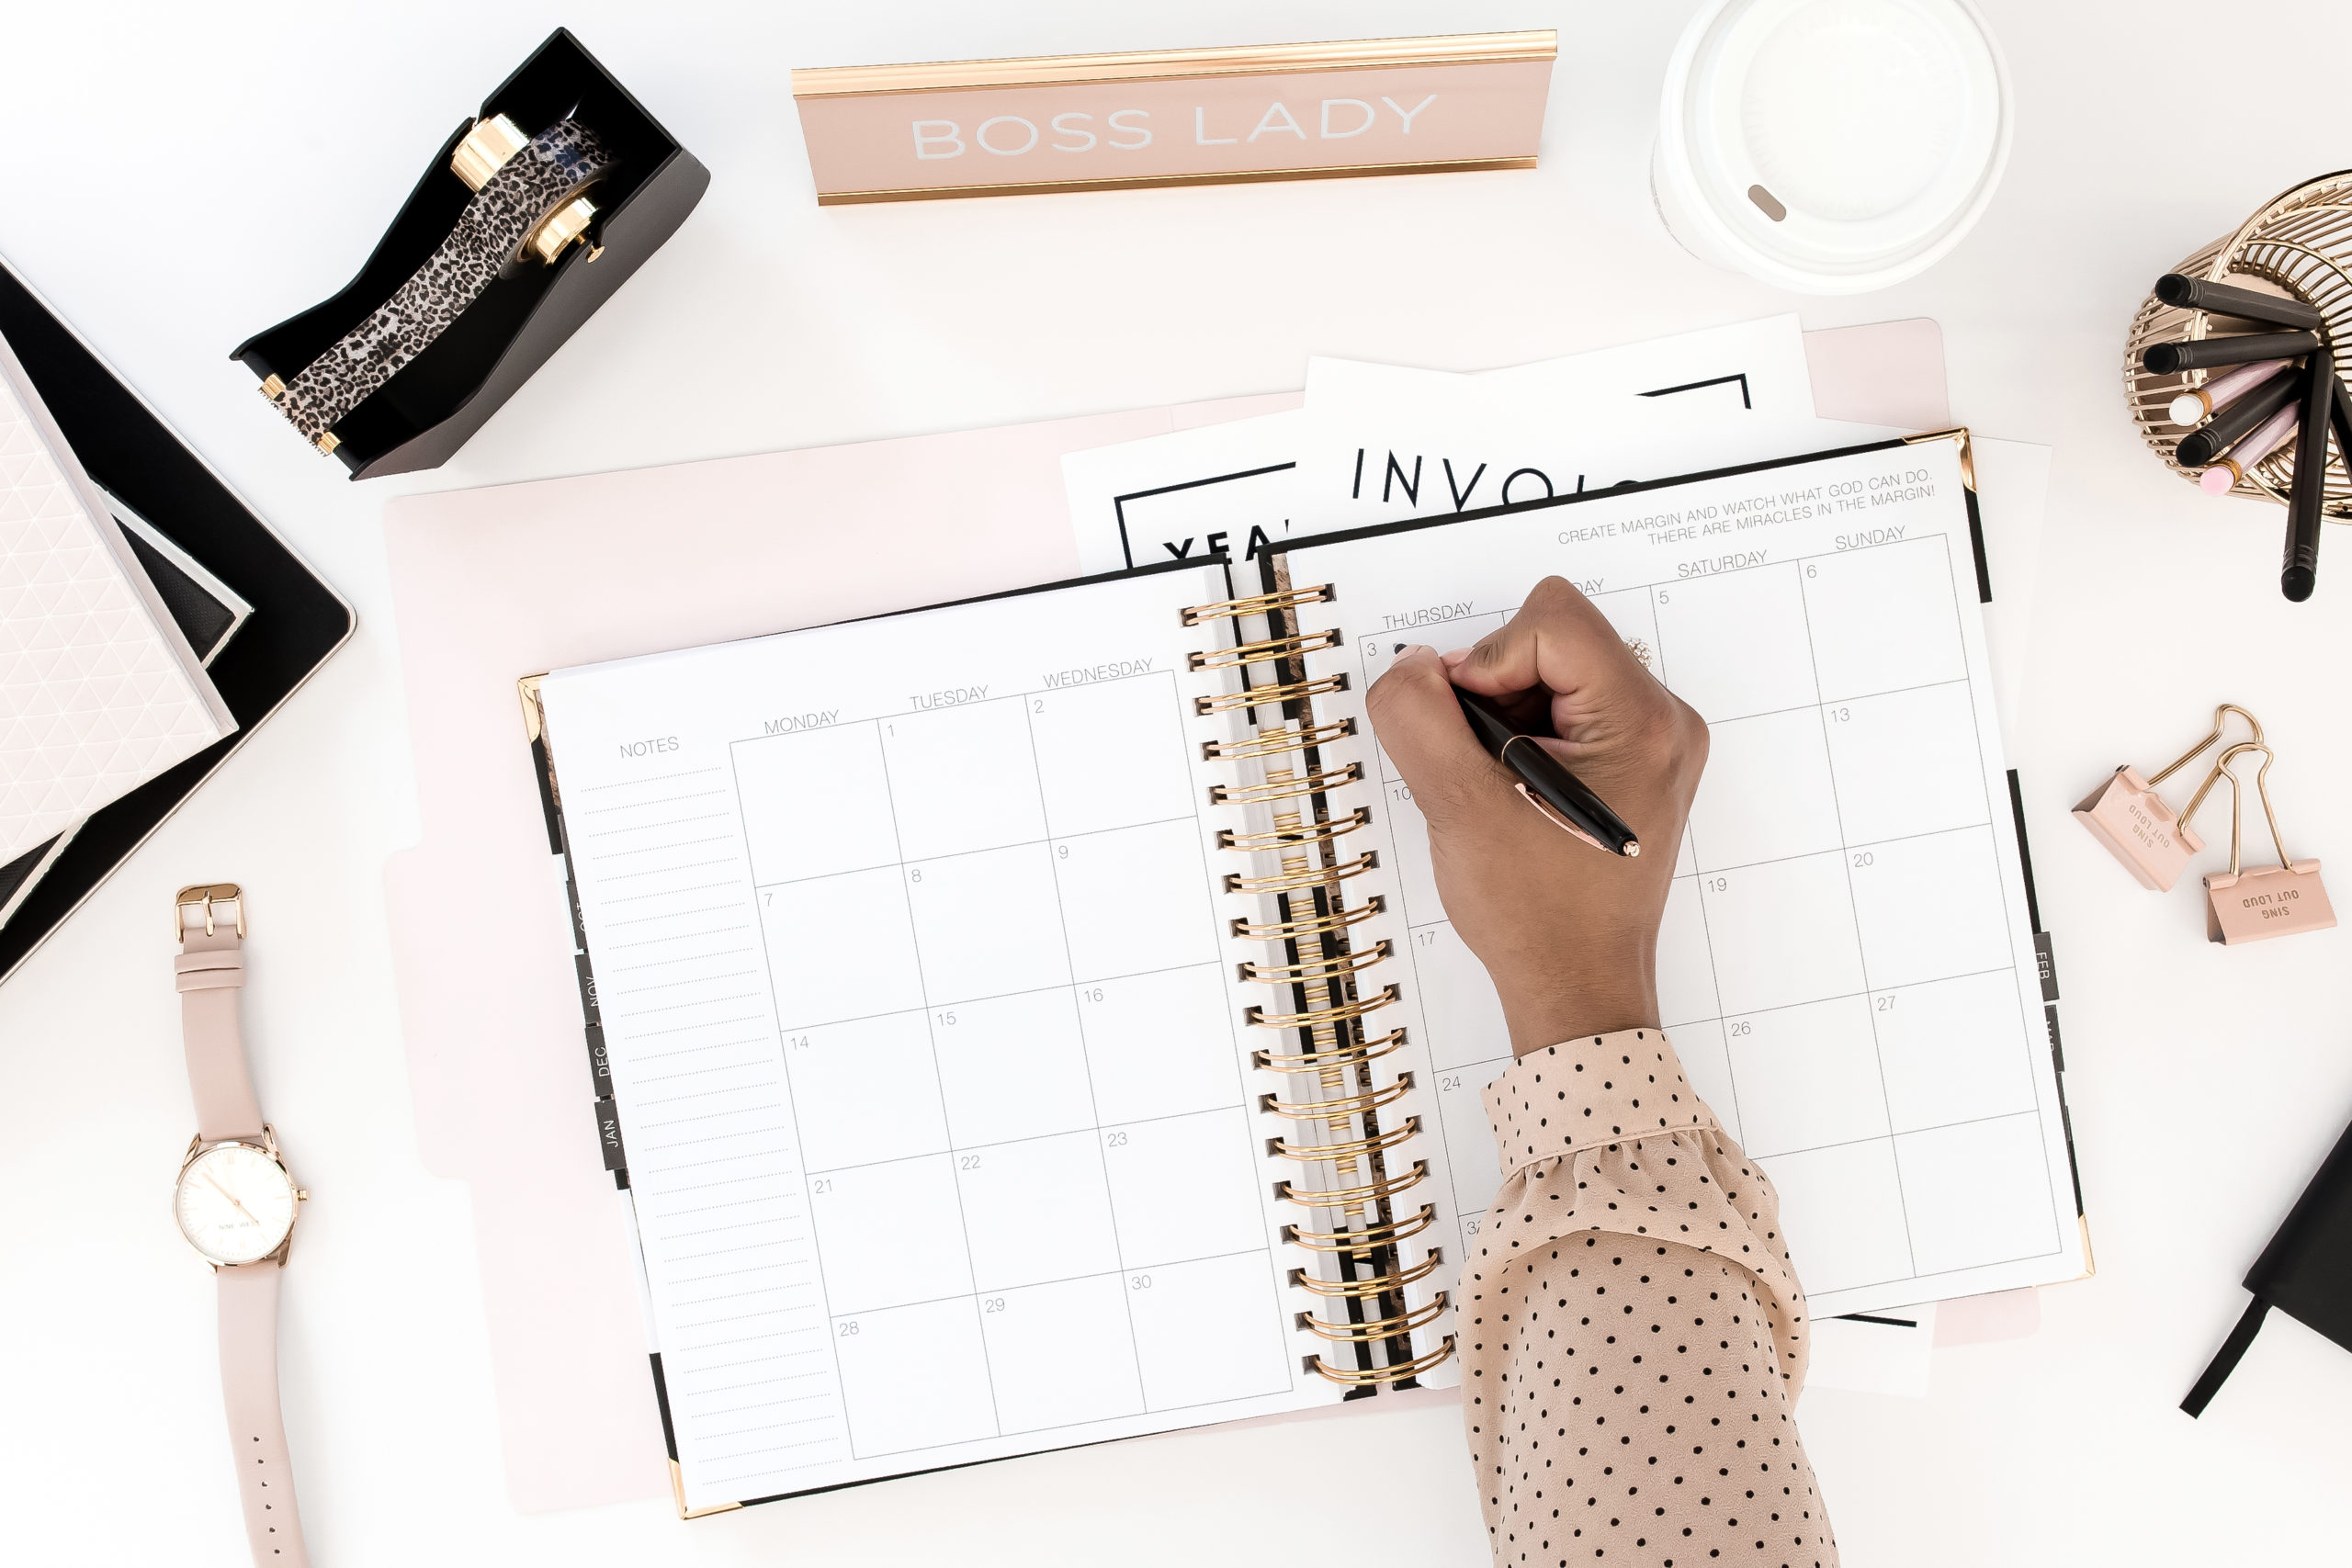 photo of a hand writing in a planner on a desk